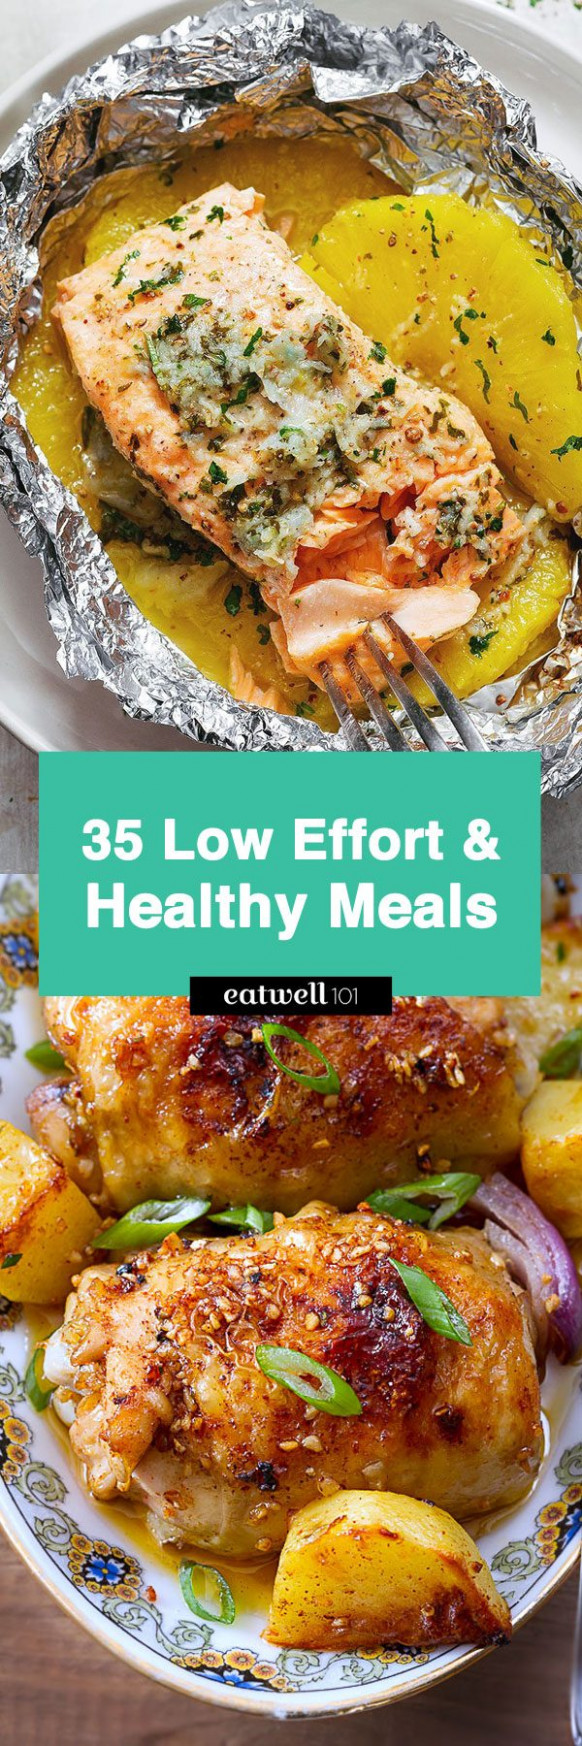 Easy Healthy Dinner Ideas: 11 Low Effort and Healthy Dinner ..